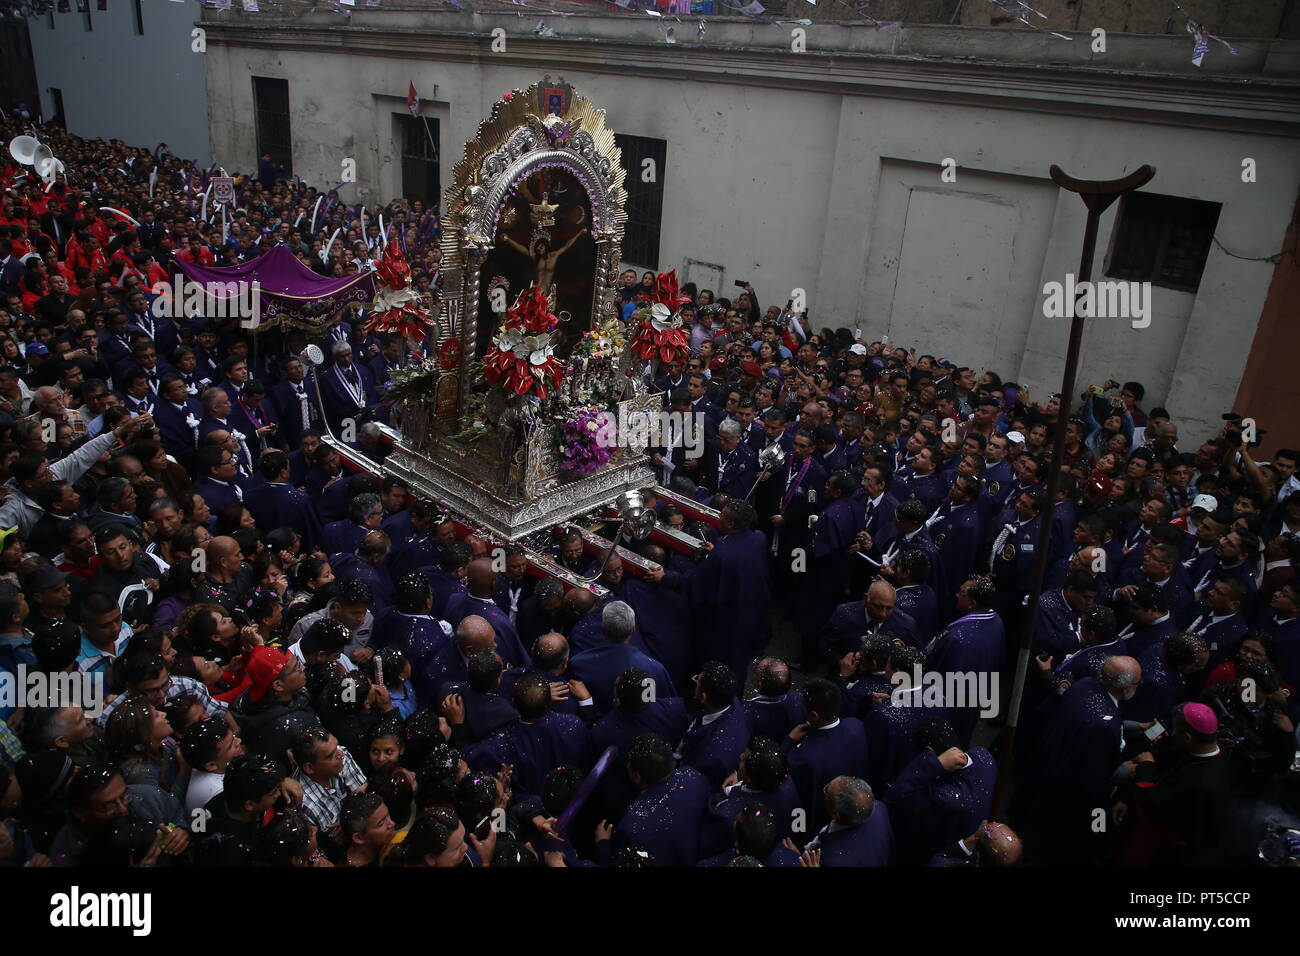 Lima, Peru. 06th Oct, 2018. Many people take part in a procession in honour of the 'Senor de los Milagros' (Lord of Miracles). 'Senor de los Milagros' is a Catholic festival that is celebrated every year in Lima. Credit: Geraldo Caso/dpa/Alamy Live News - Stock Image